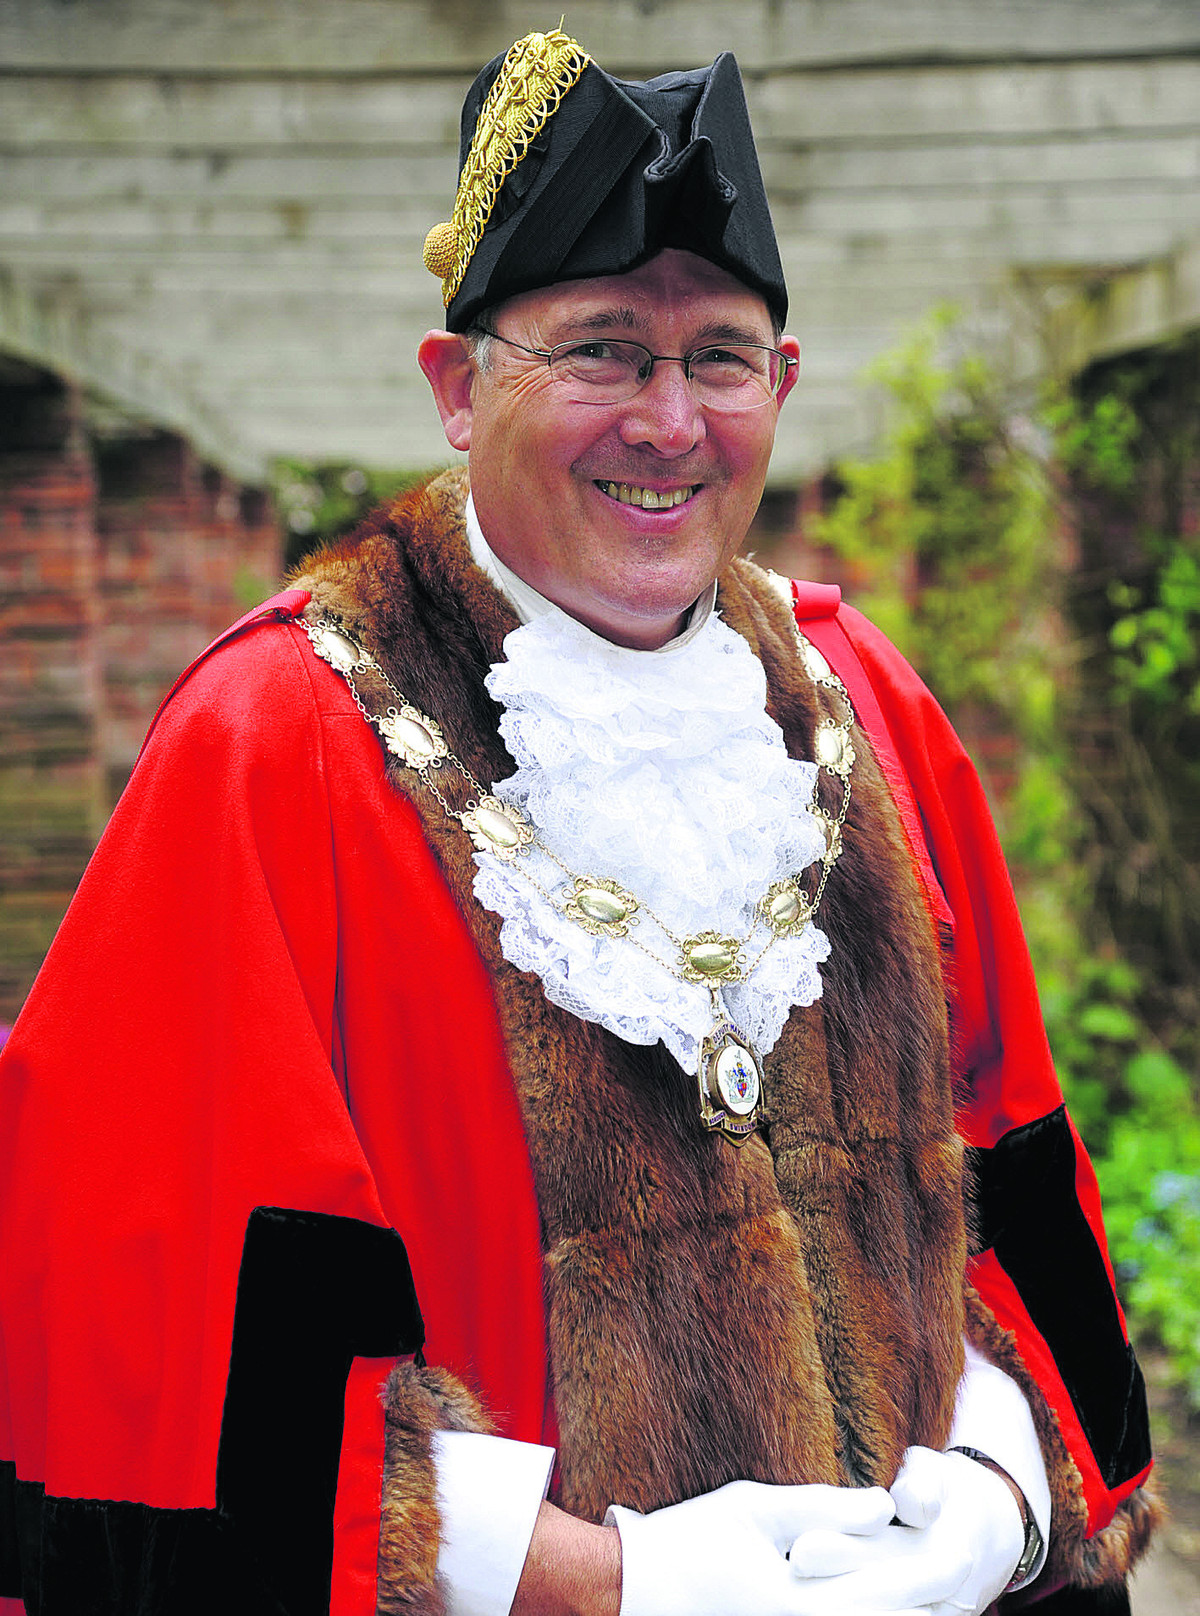 Coun Nick Martin, the current Swindon mayor, who is the subject of two complaints against him